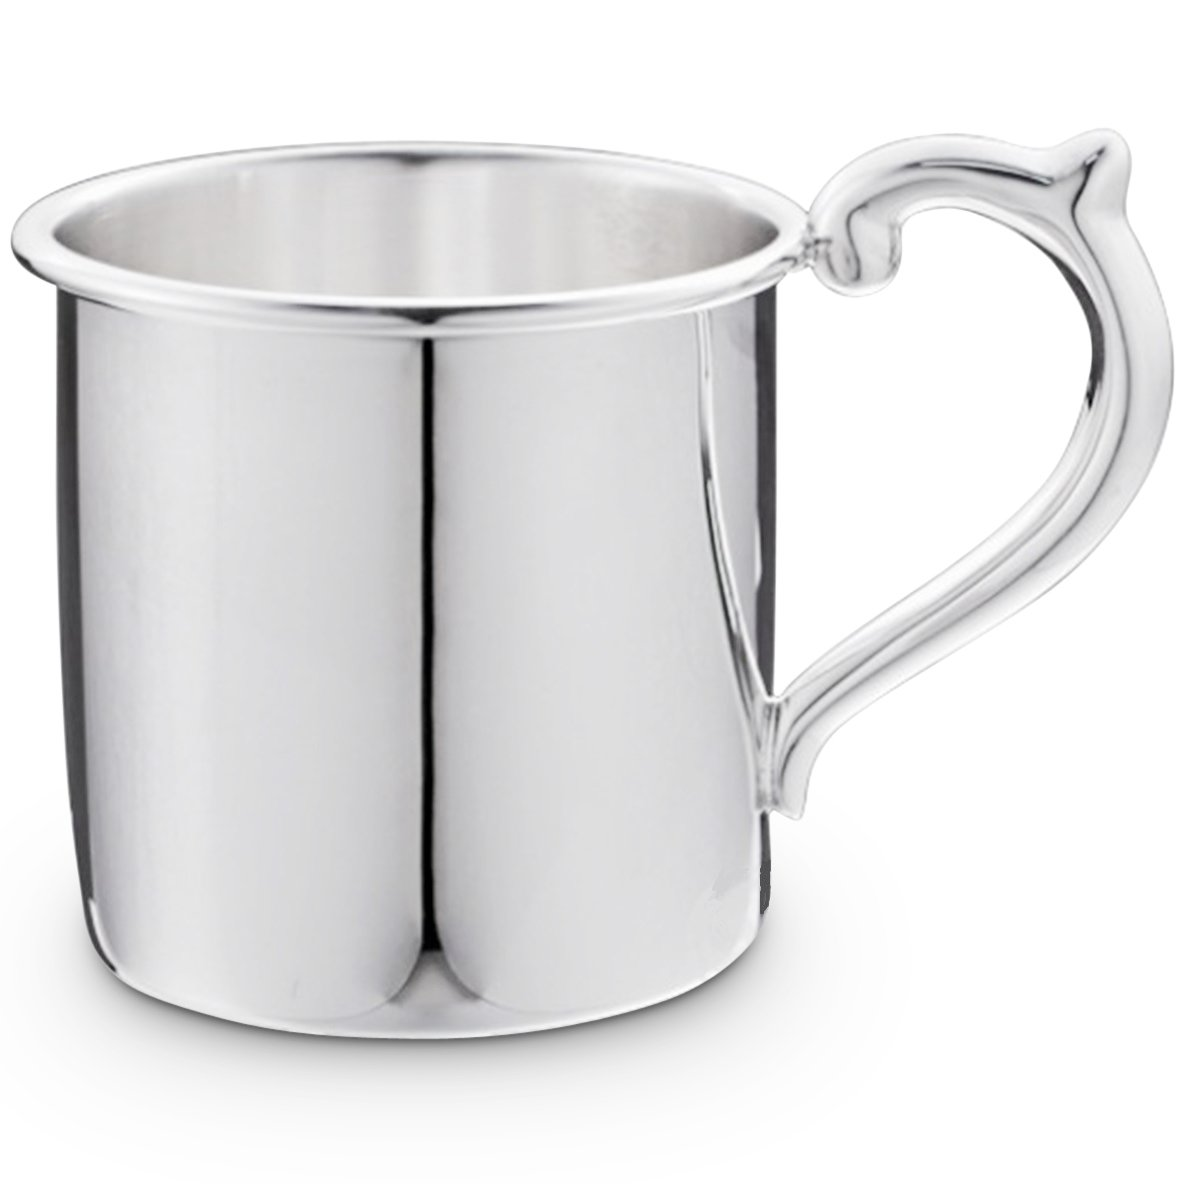 Cunill 3.5-Ounce Plain Baby Cup, 2.12-Inch, Sterling Silver